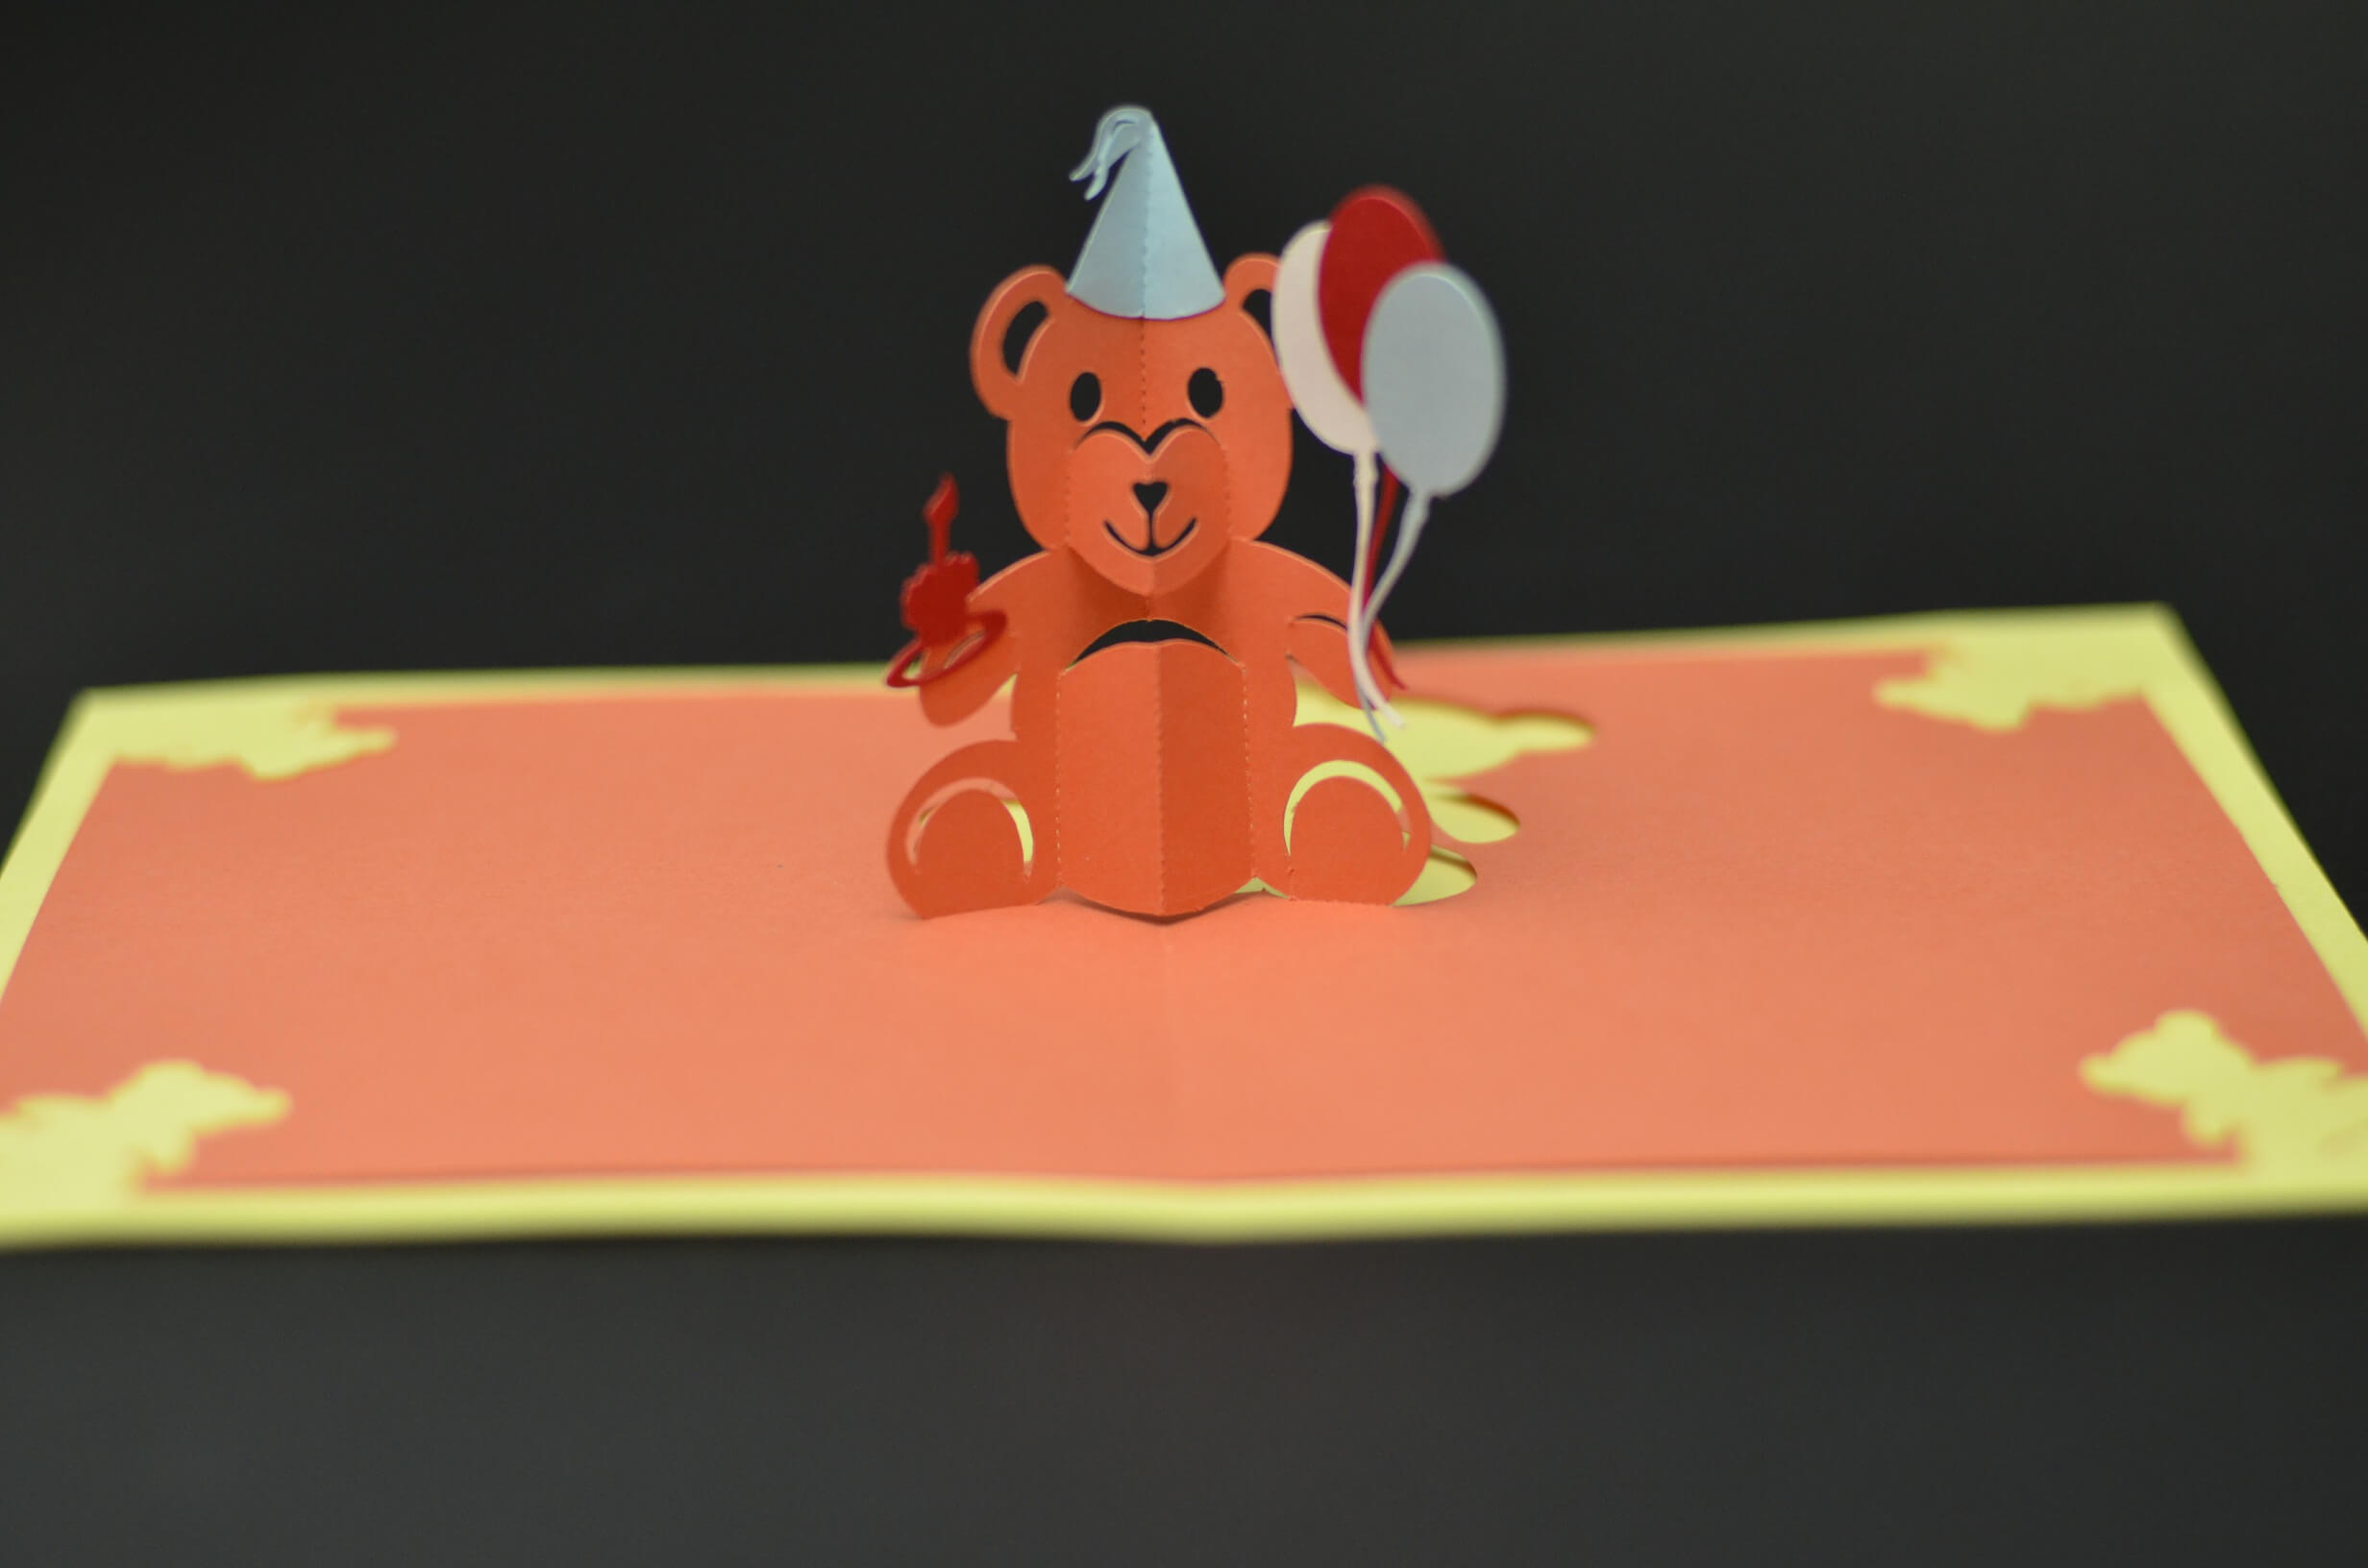 Teddy Bear Pop Up Card: Tutorial And Template - Creative Pop inside Teddy Bear Pop Up Card Template Free